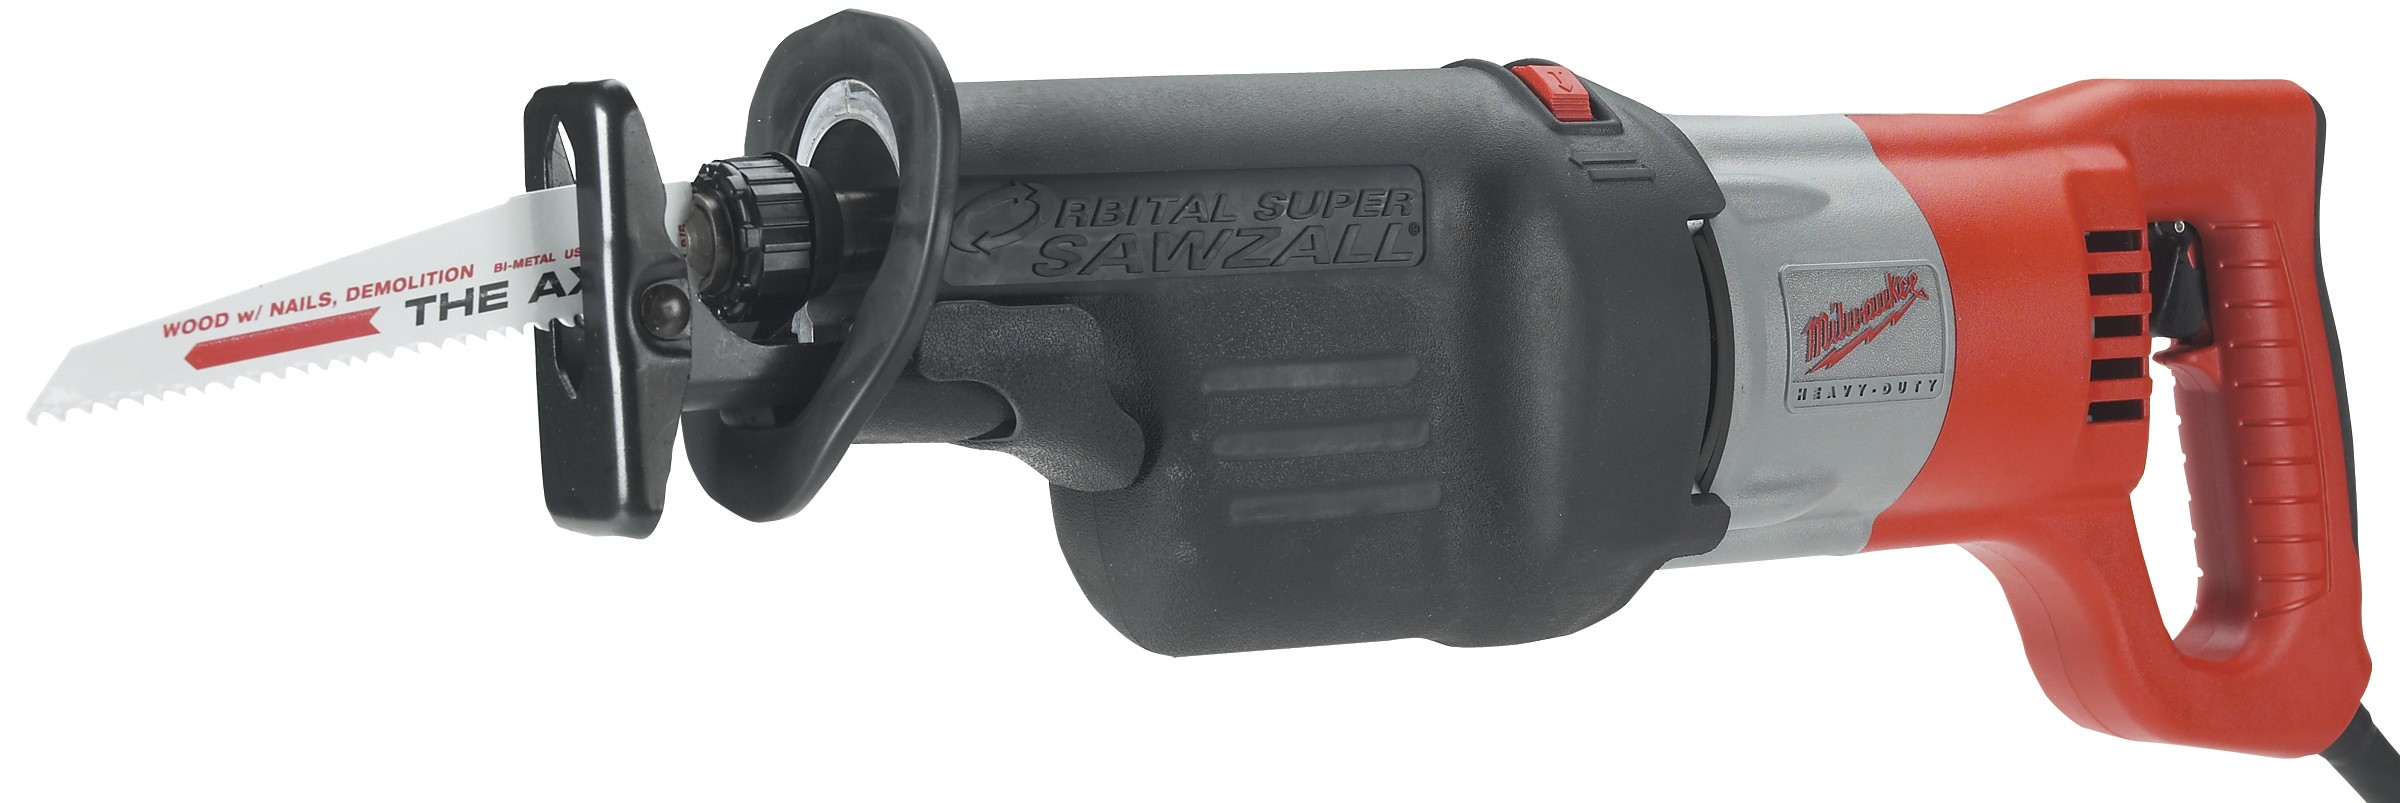 Milwaukee 6536-21 13 Amp Orbital Super Sawzall® Recip Saw